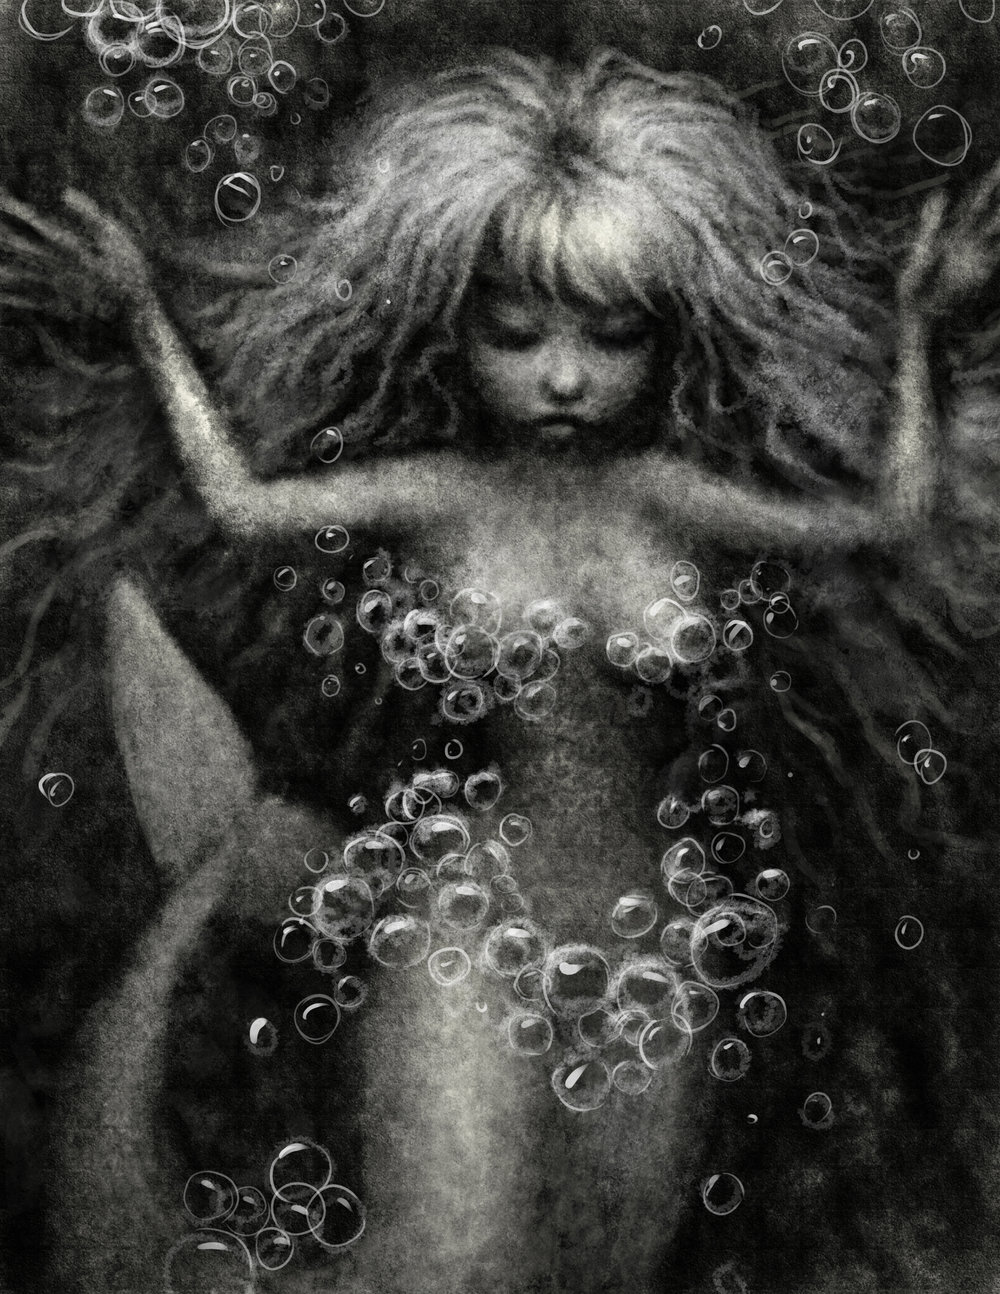 BUBBLES–Digital graphite. Conceptual illustration of mermaid playing with a bubble net.